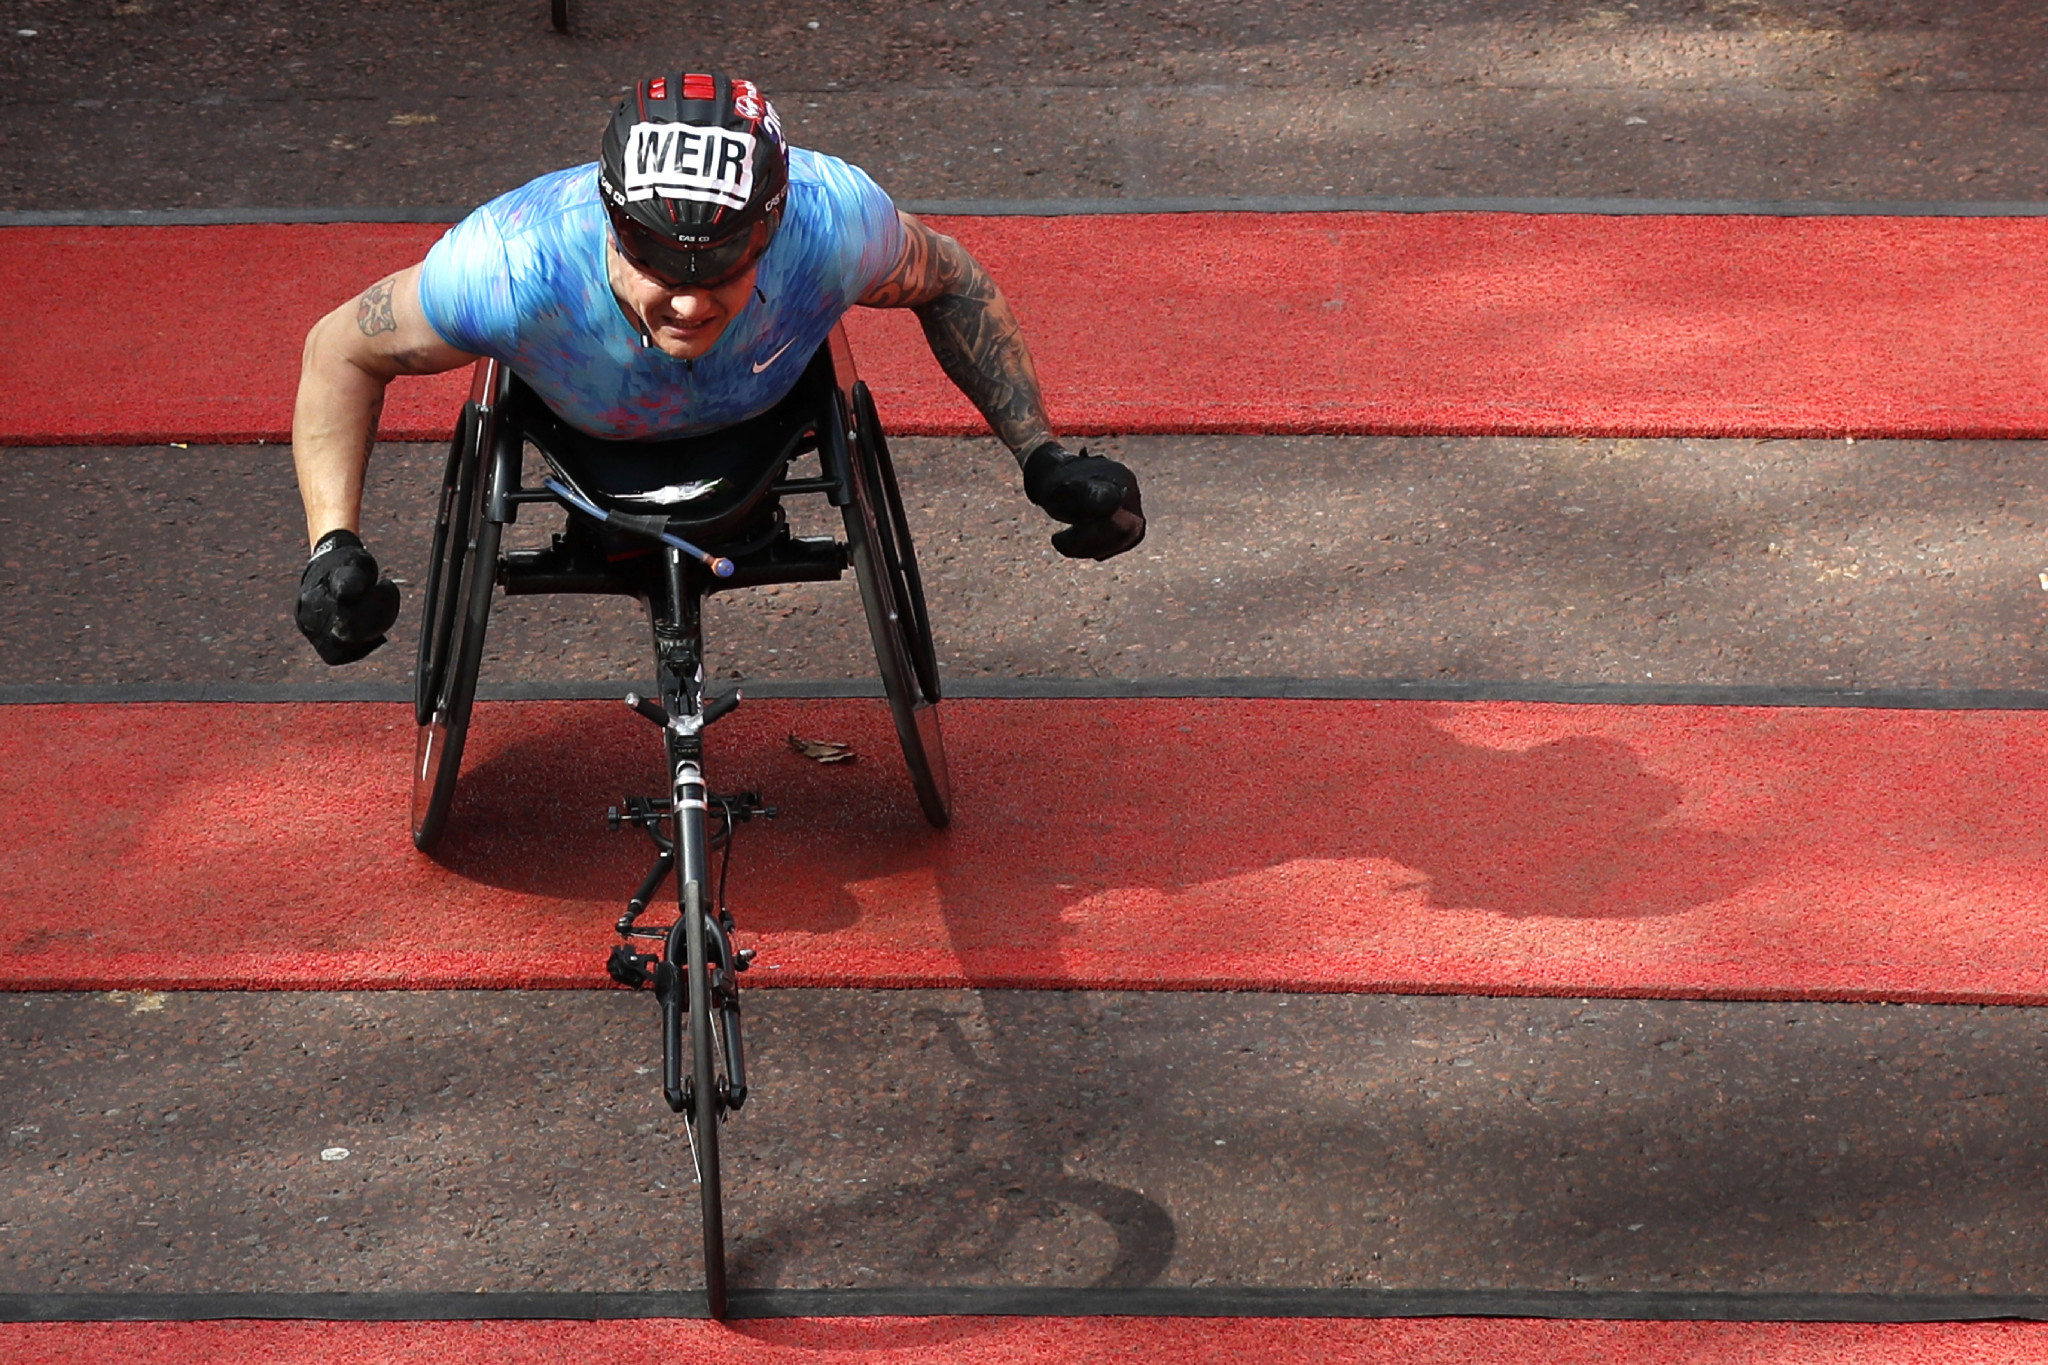 Weir secures eighth wheelchair victory as De Rozario claims shock win at London Marathon